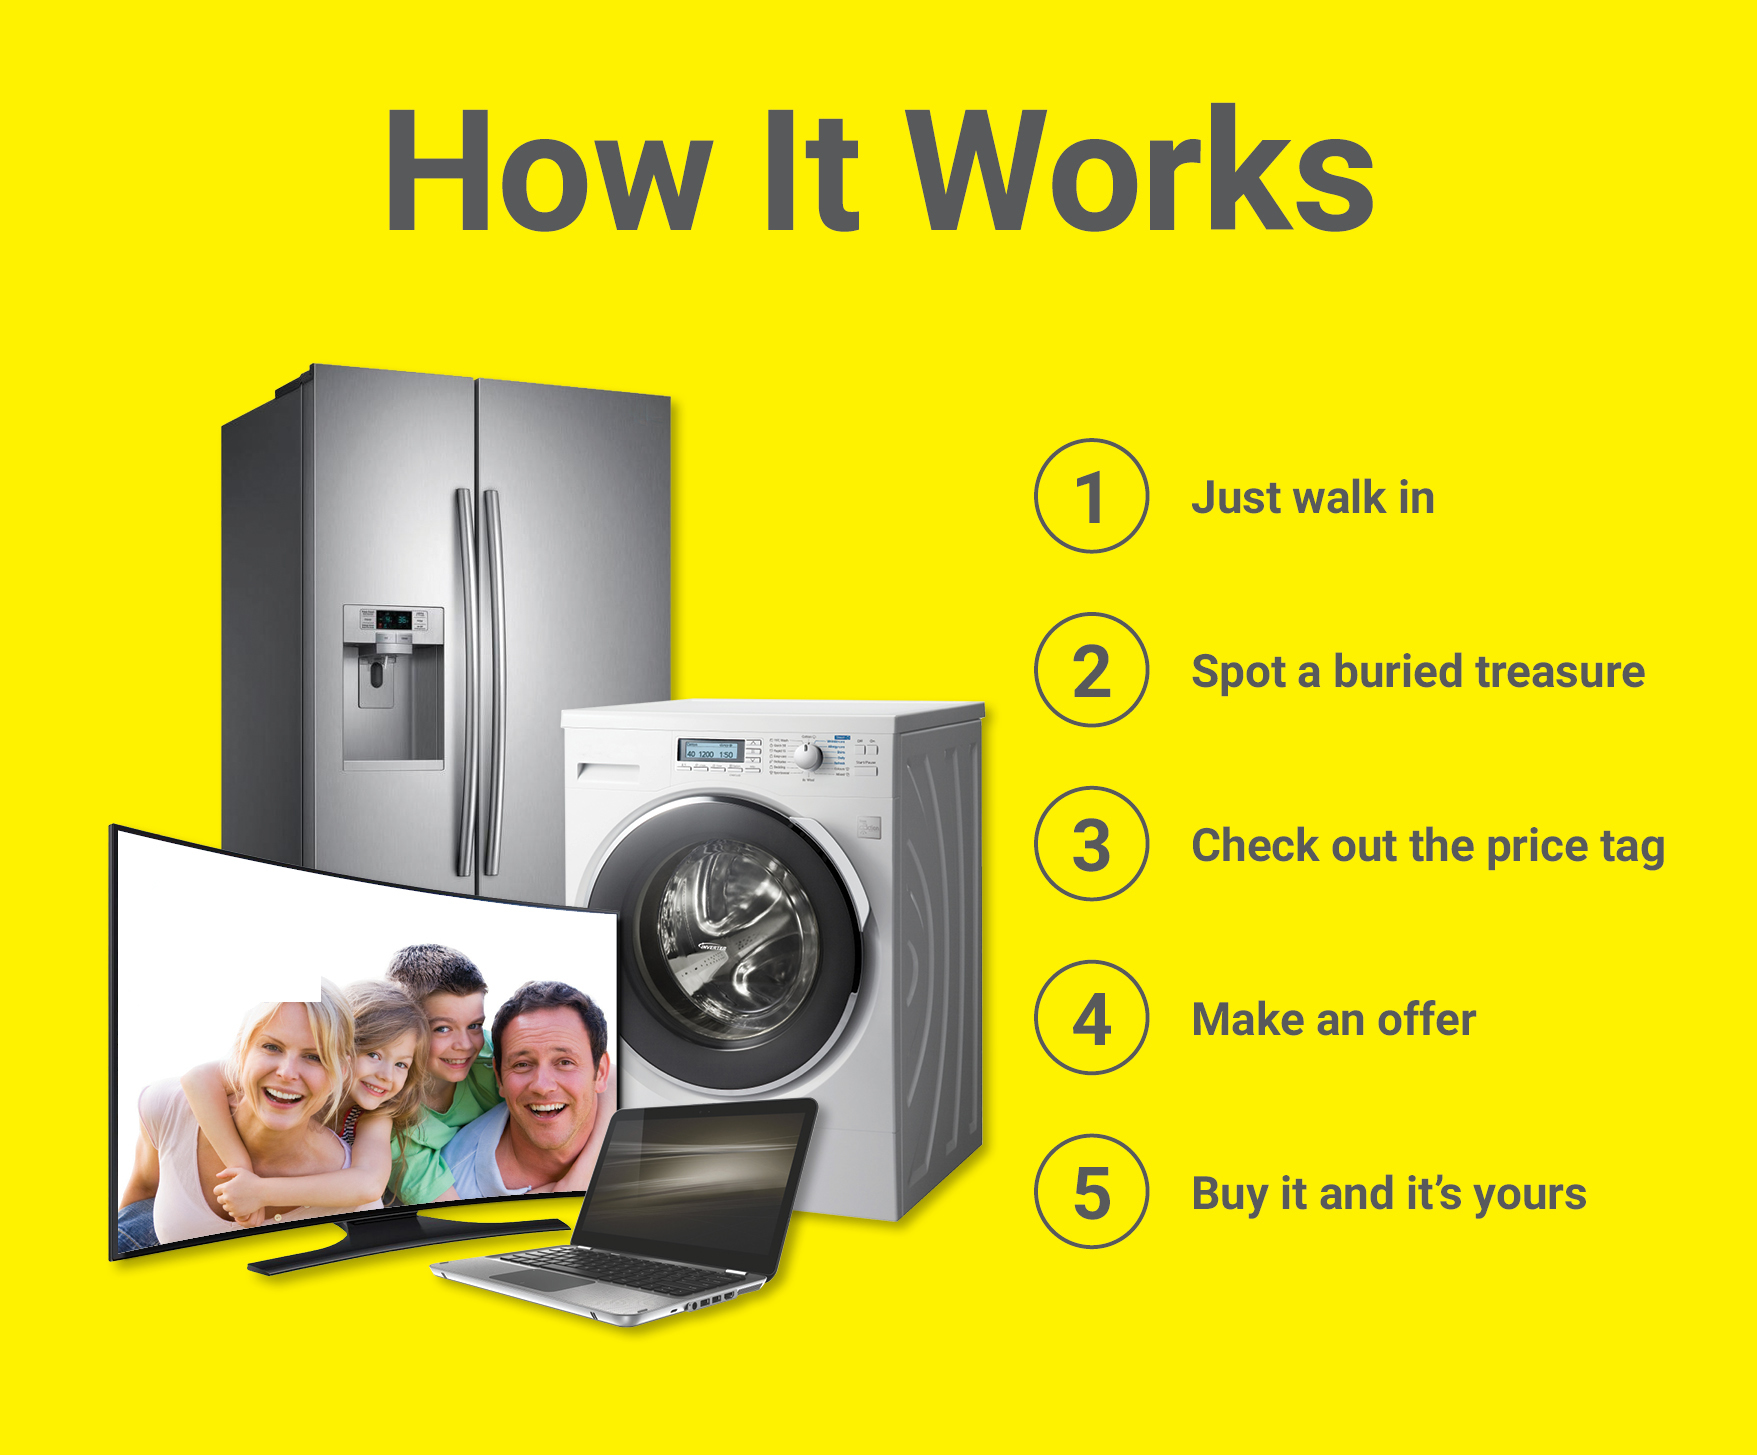 How it works, 1 walk-in 2 spot a treasure 3 check out the price tag 4 make an offer 5 buy it and it is yours. unless the buy behind you offers us five dollars more